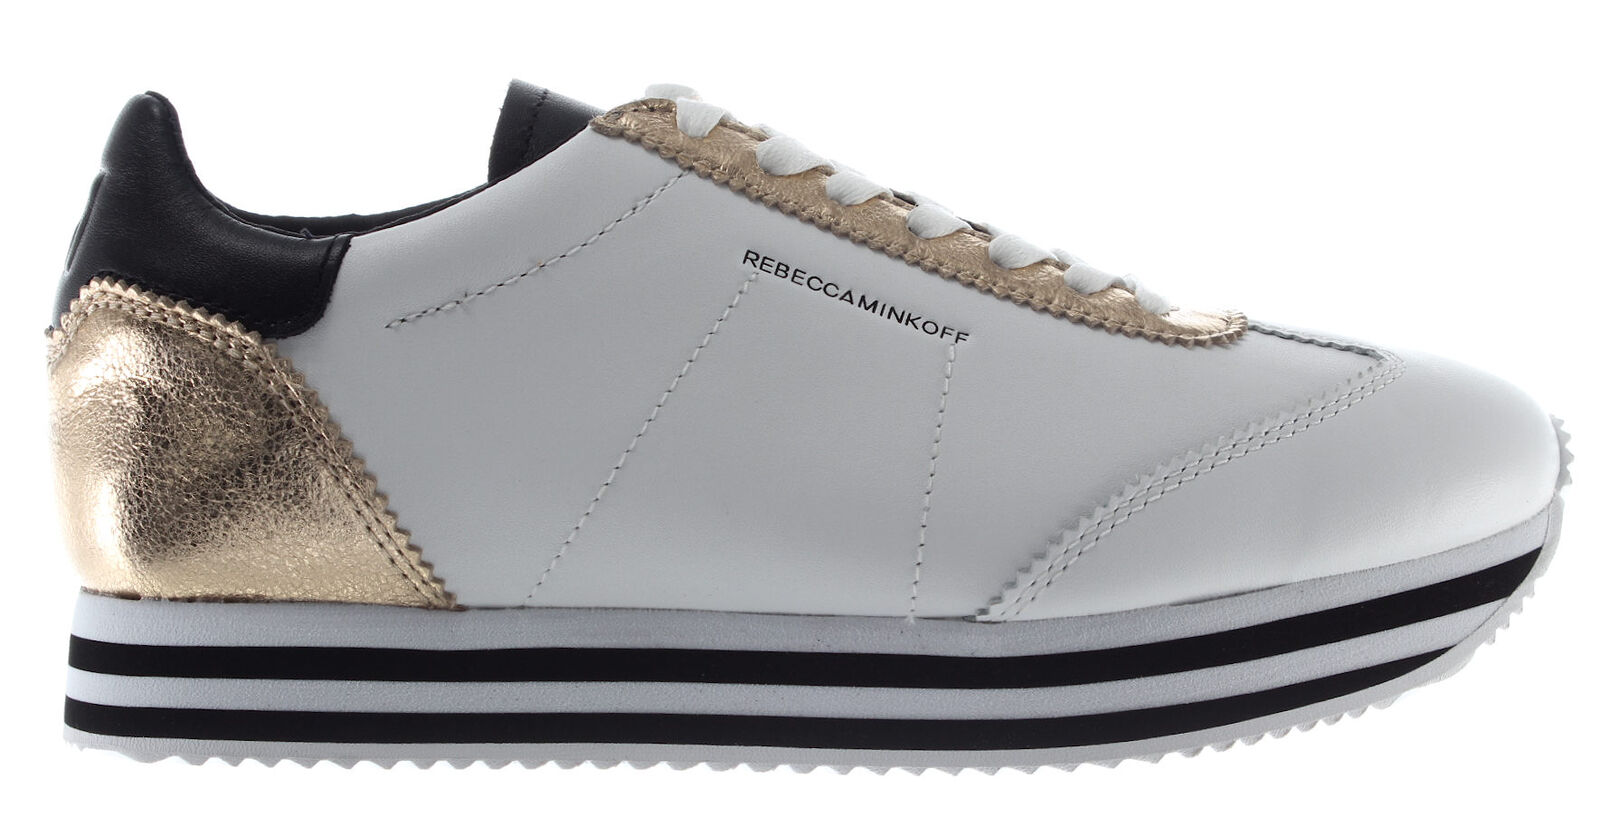 REBECCA MINKOFF shoes shoes shoes women Sneakers RMSZLK01 WPLT Susanna Pelle Bianco gold New 170df4